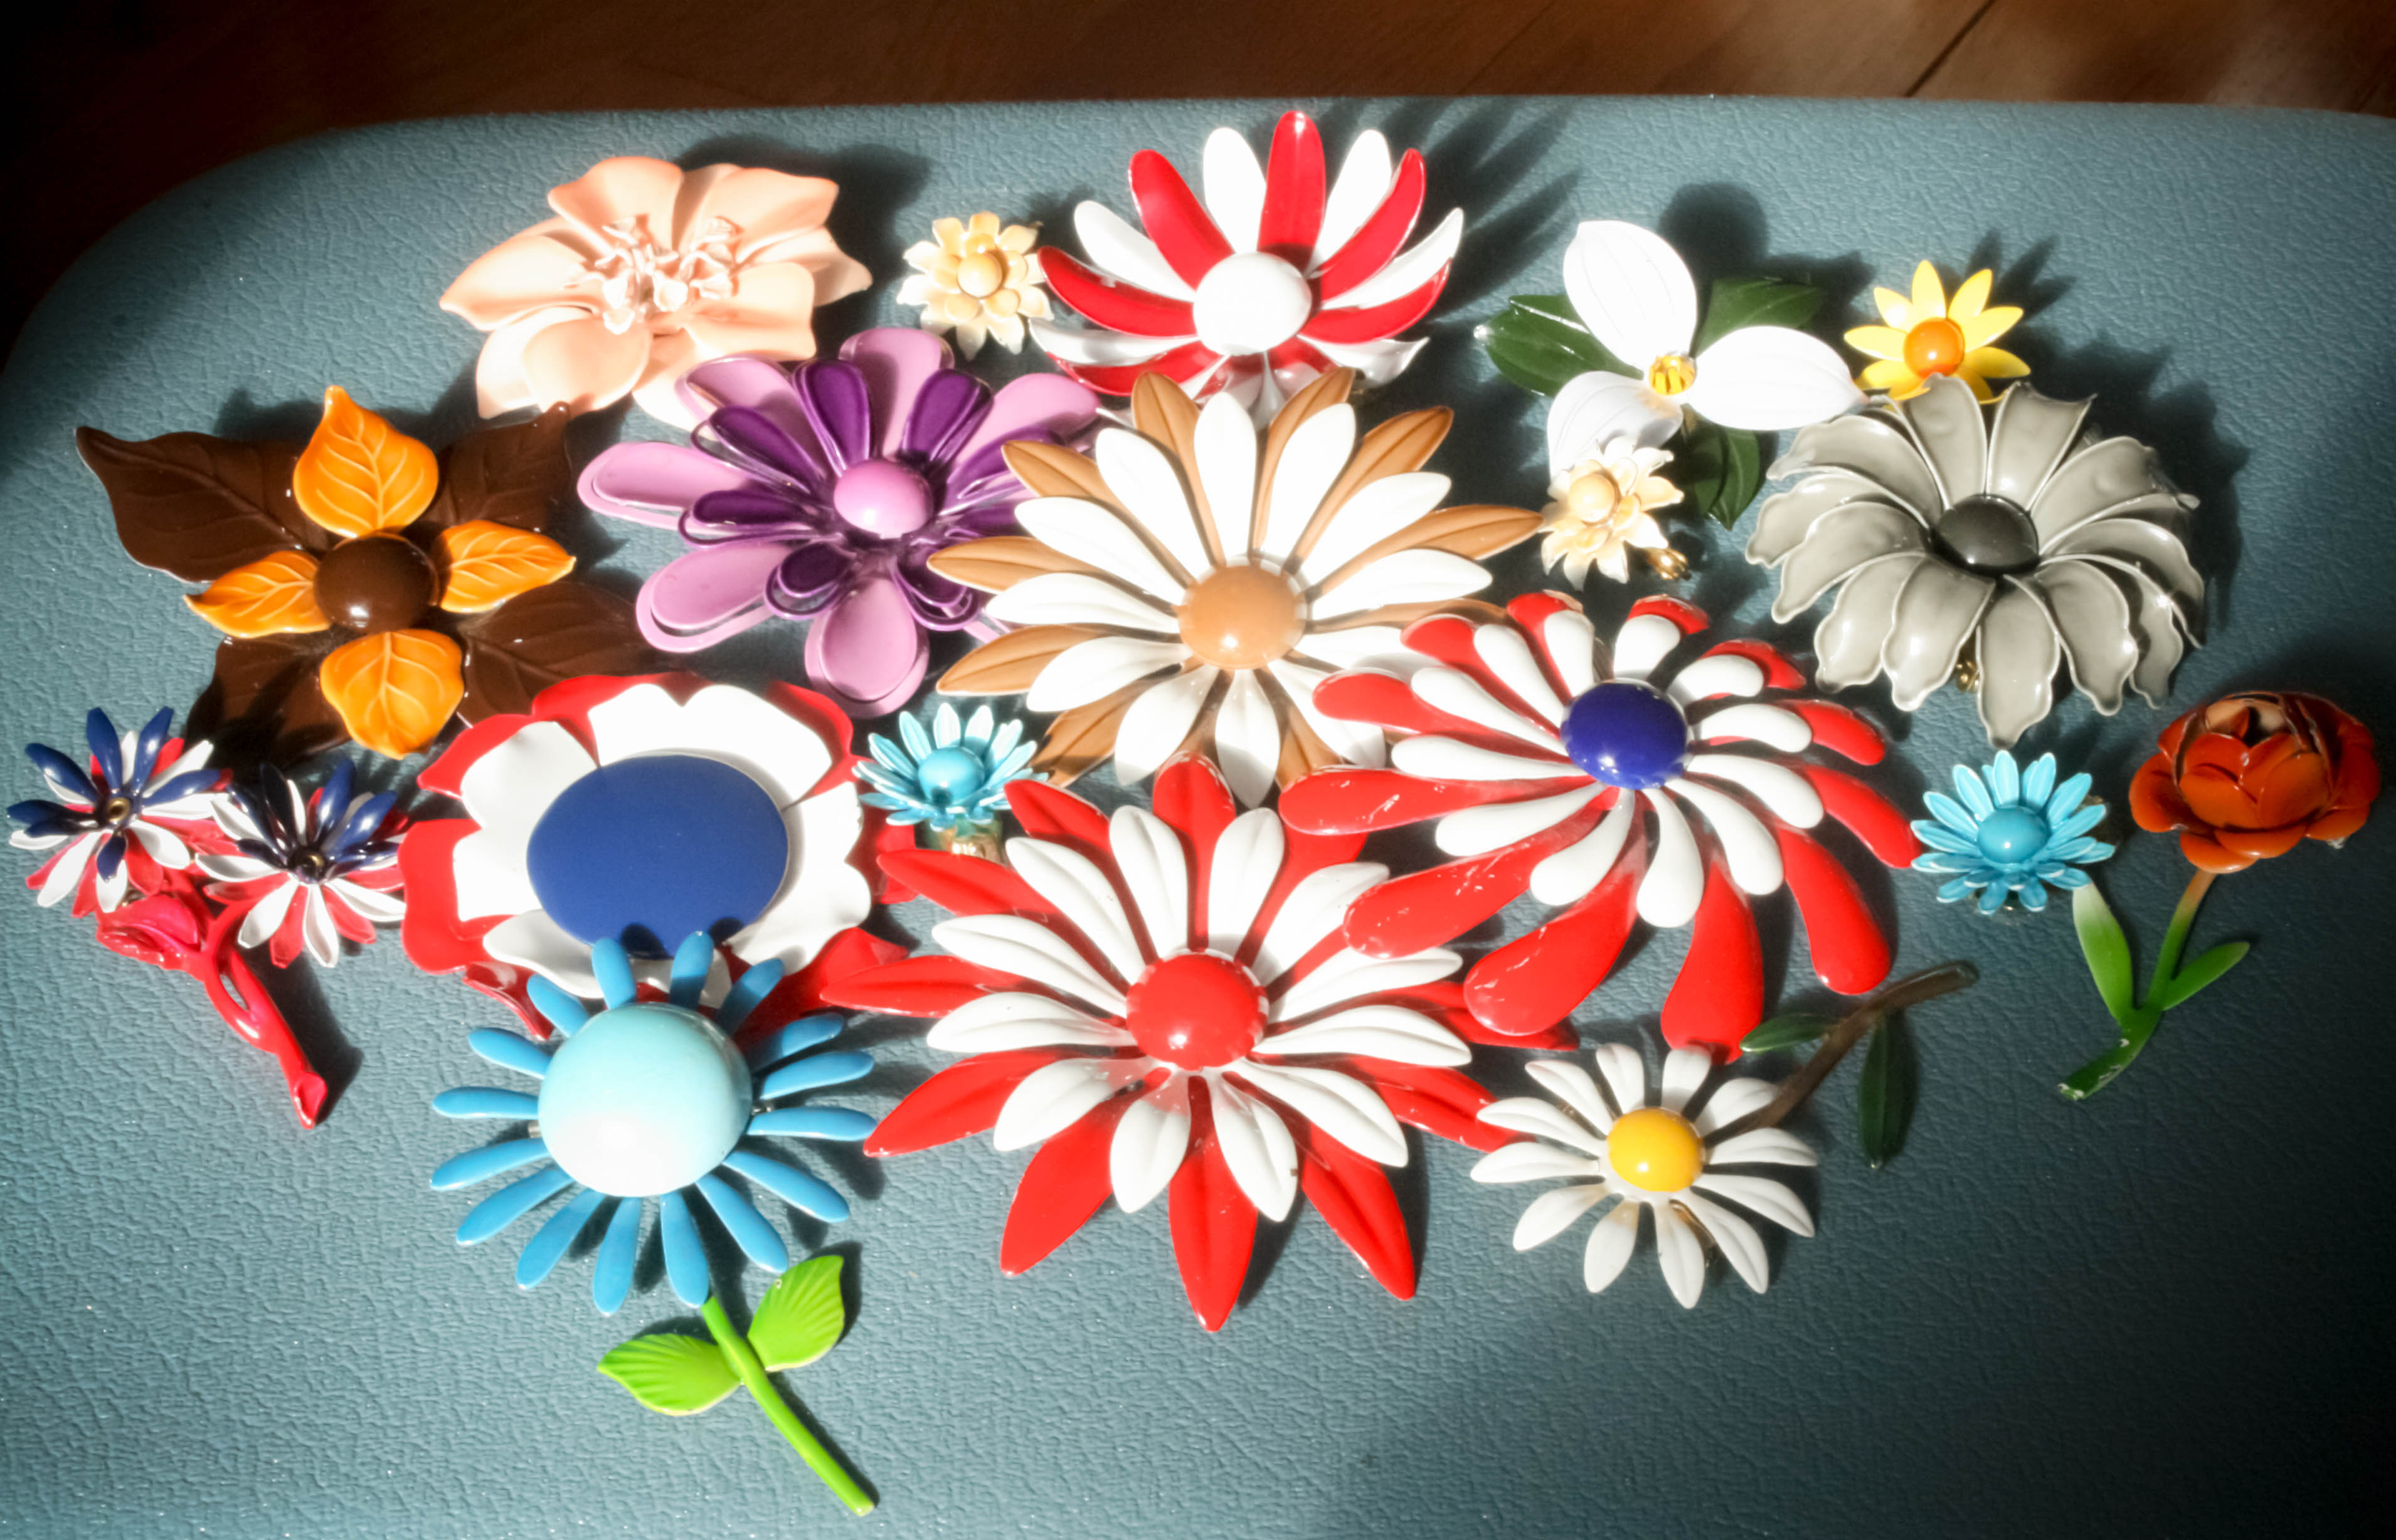 8db5cd80e7b Vintage enamel flower brooches are so much fun! They were a popular  accessory in the 1960s and have been making a huge comeback over the past  few years.